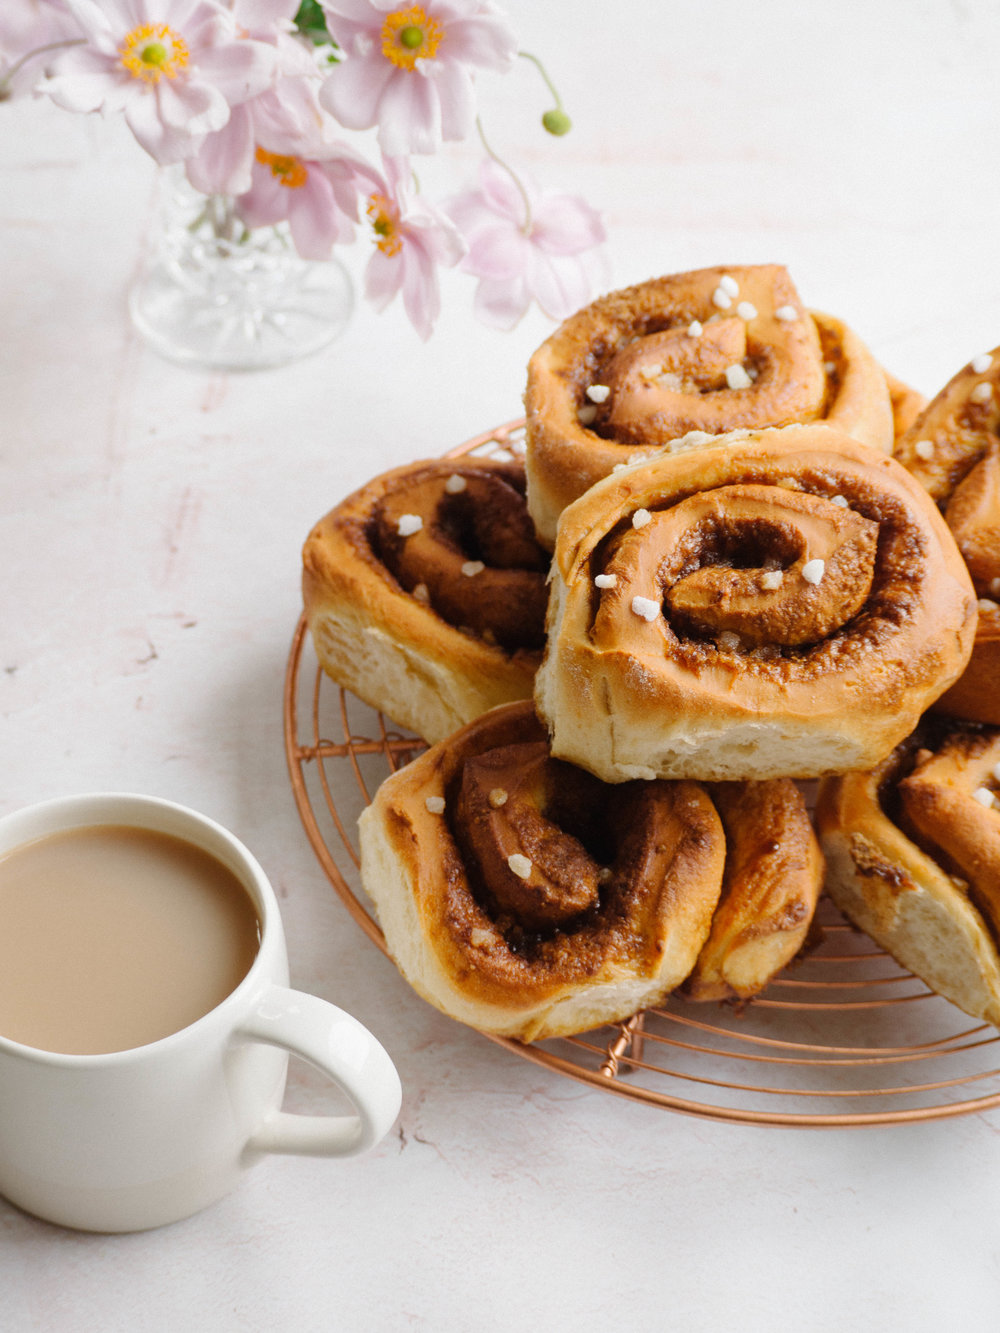 Easter Spiced Brioche Scrolls using The Healthy Baker's Low FODMAP Plain Flour